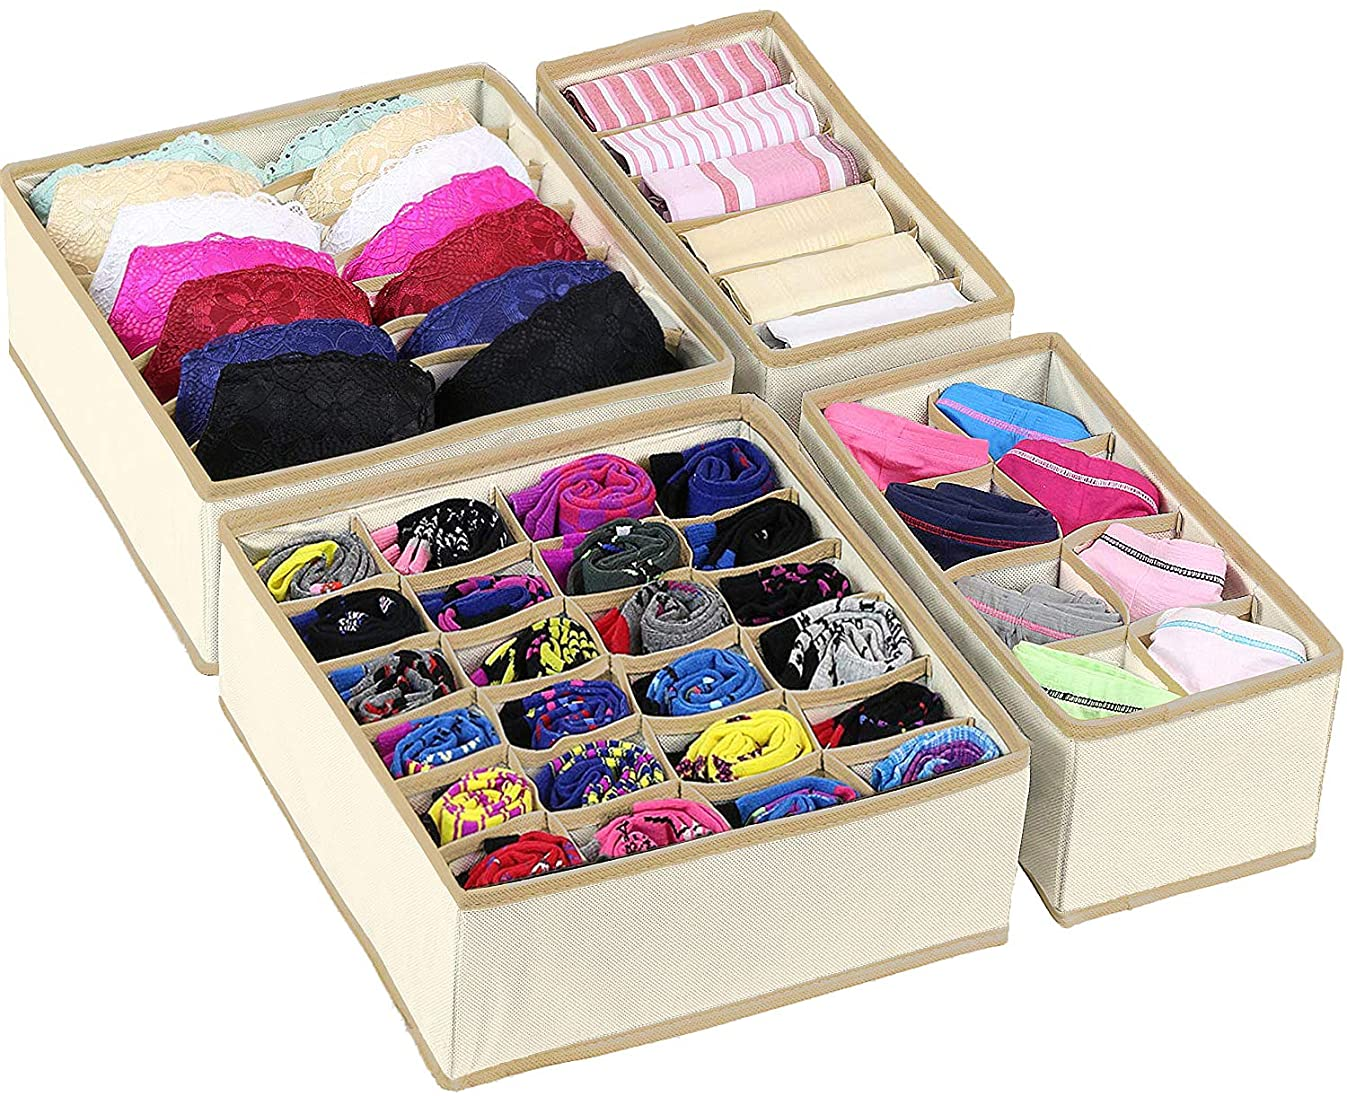 Simplized Closet Underwear Organizer, 4 Pack, Beige | Collapsible Foldable Cloth Storage Box, Dresser Drawer Organizer Divider Set Cube Basket Bins Containers for Lingerie, Clothes, Bras, Socks, Ties,